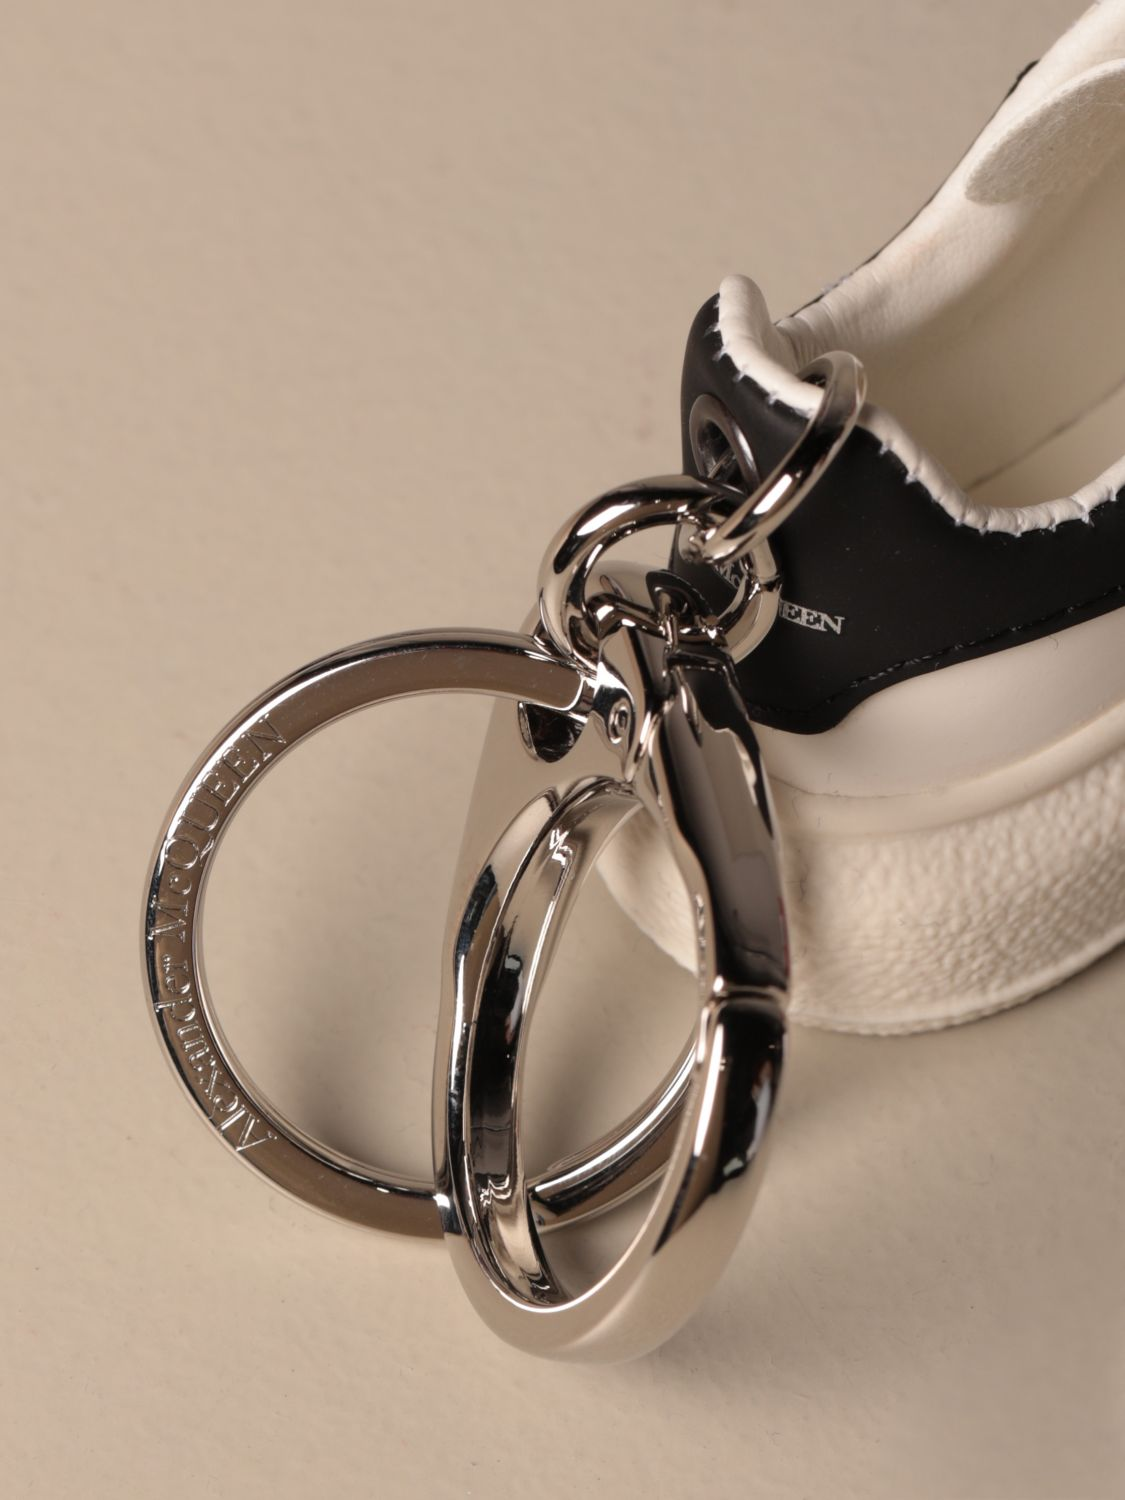 Keyring Mcq Mcqueen: Mcq McQueen keychain in the shape of a sneakers black 2